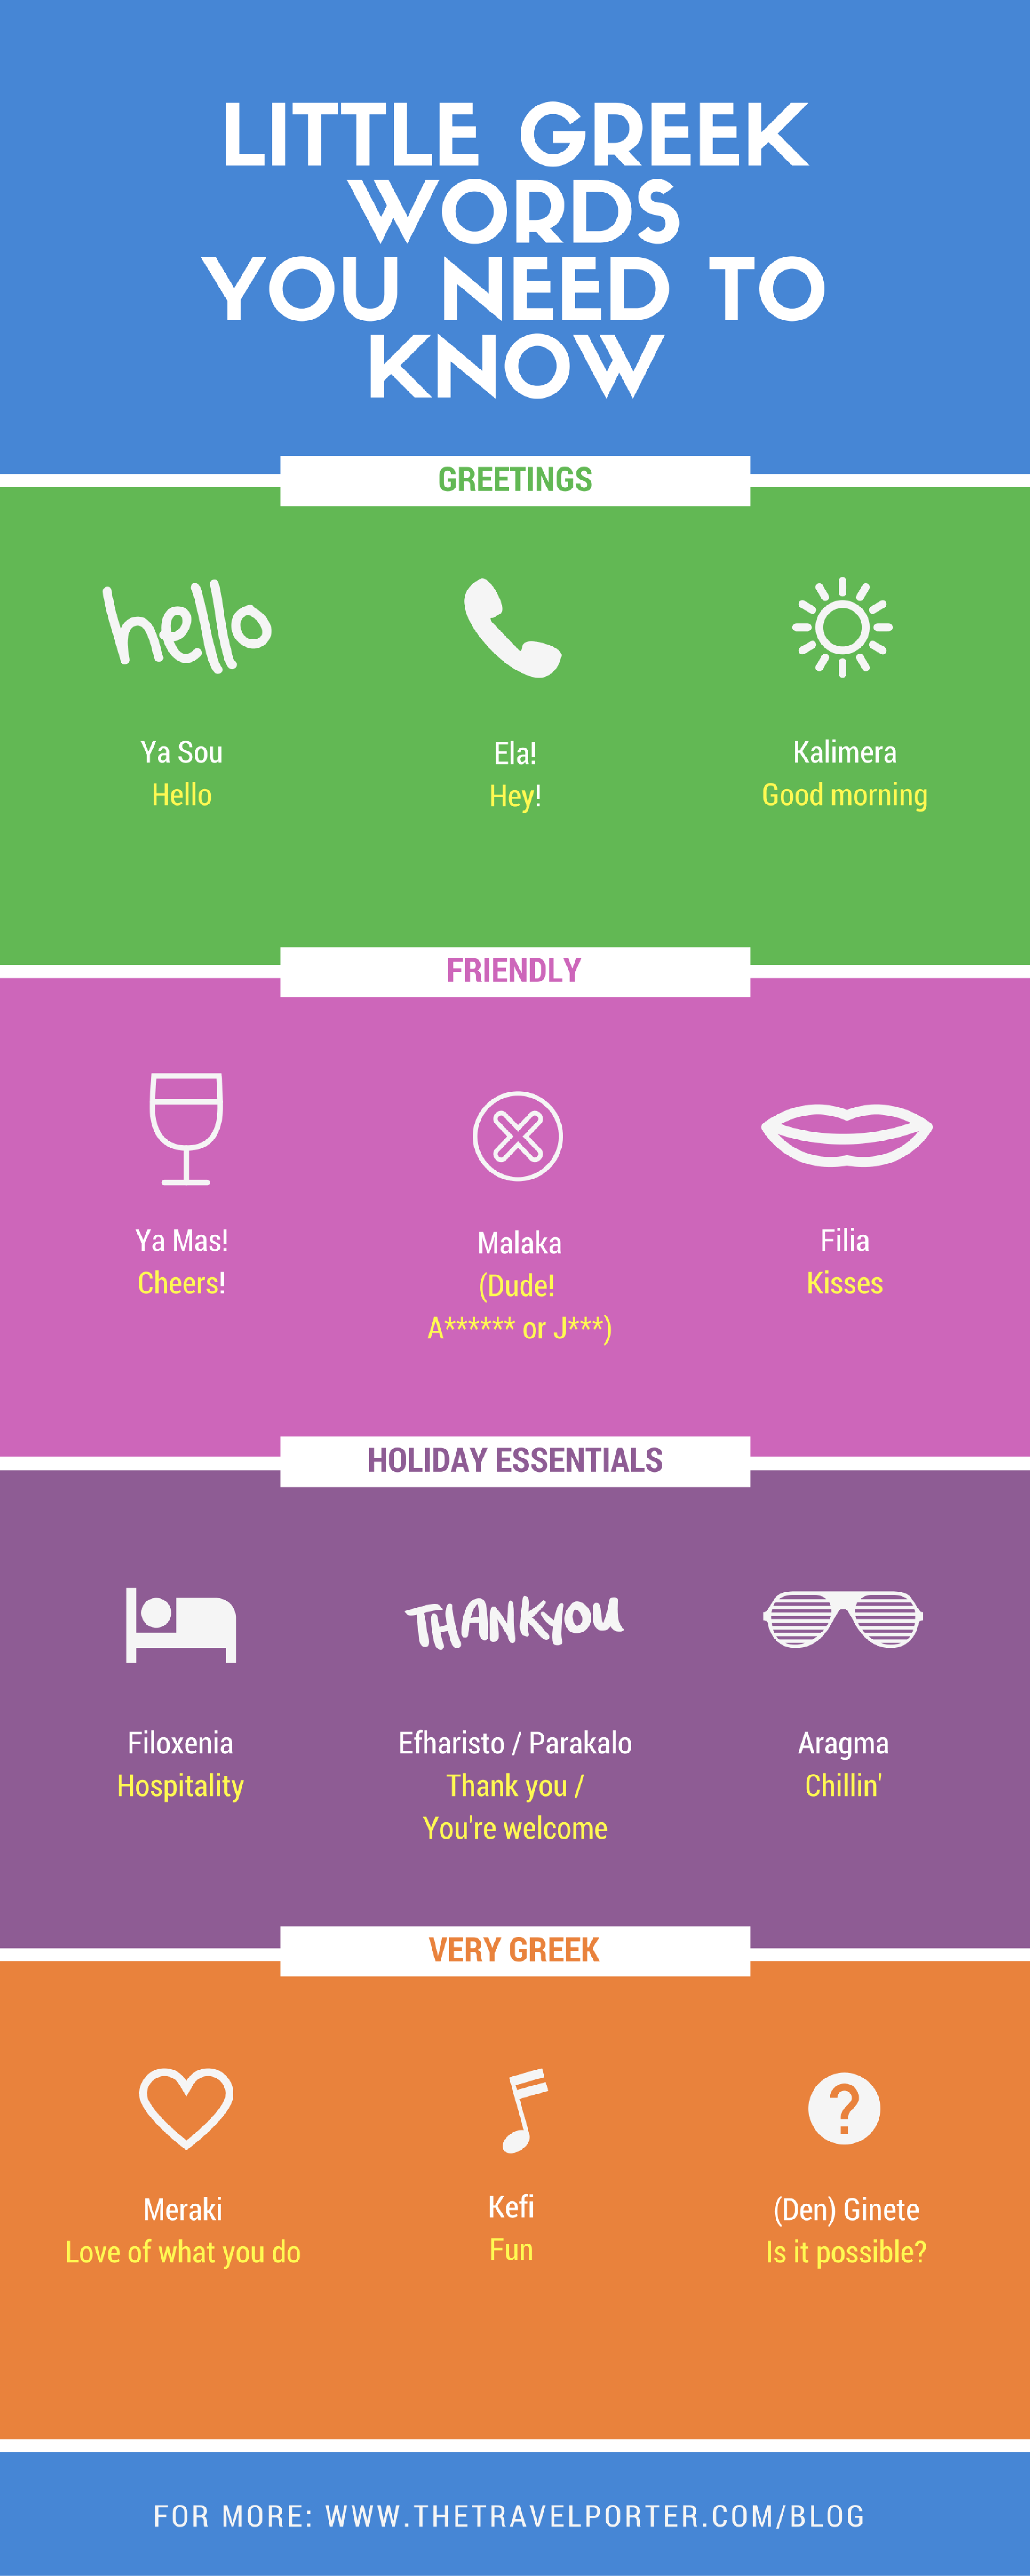 Check out our quick guide to Greek words you need to know for your visit to Greece!